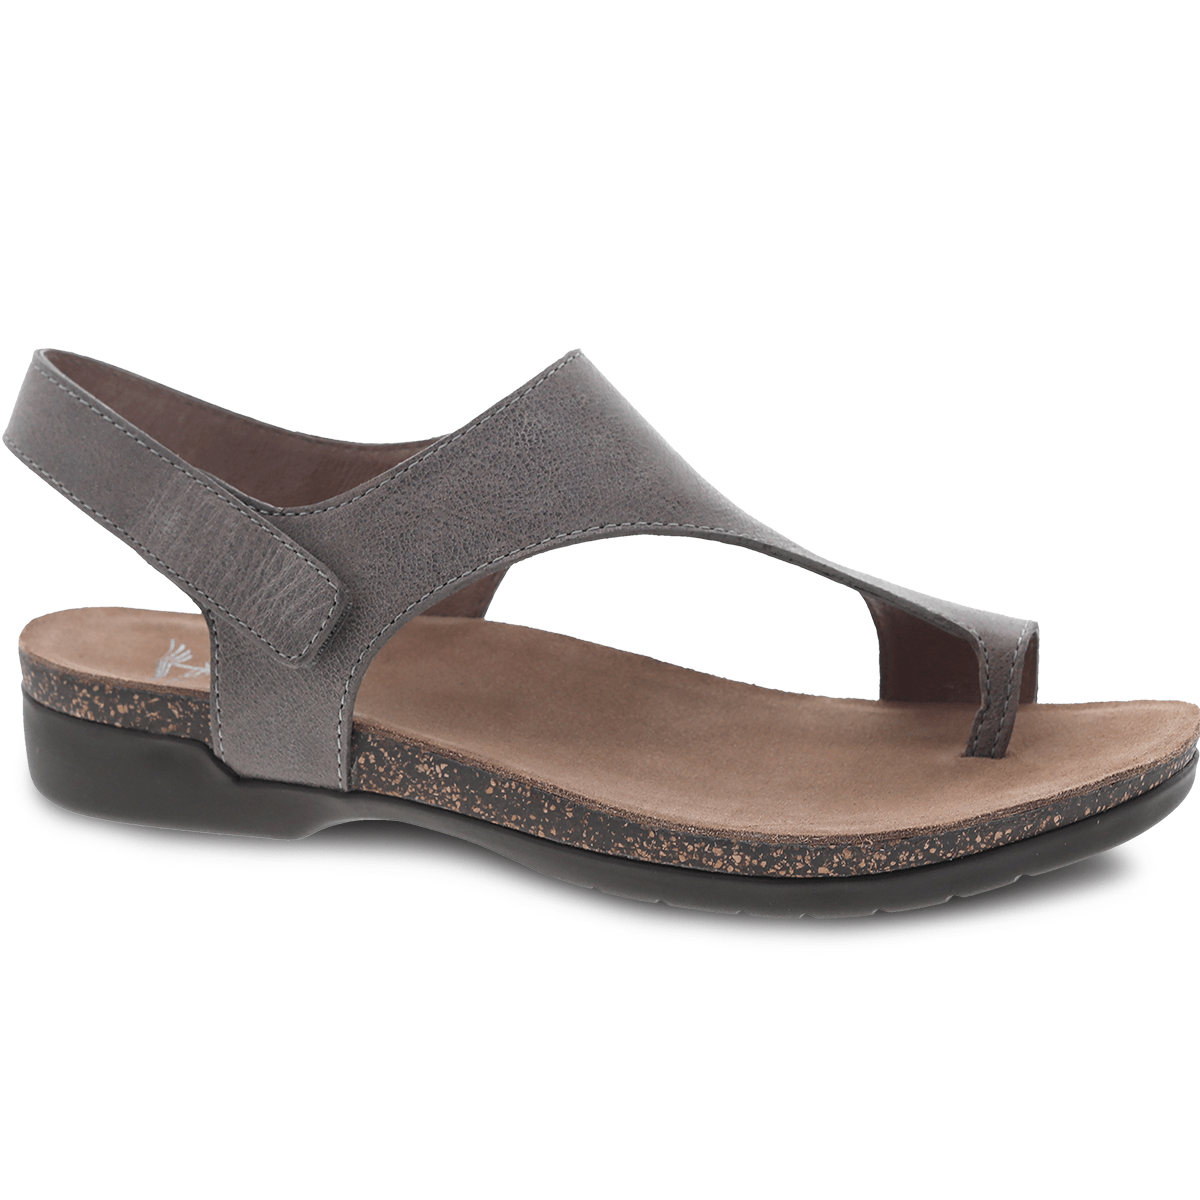 Dansko Reece Women's Leather T Strap Slingback Casual Sandal Shoe